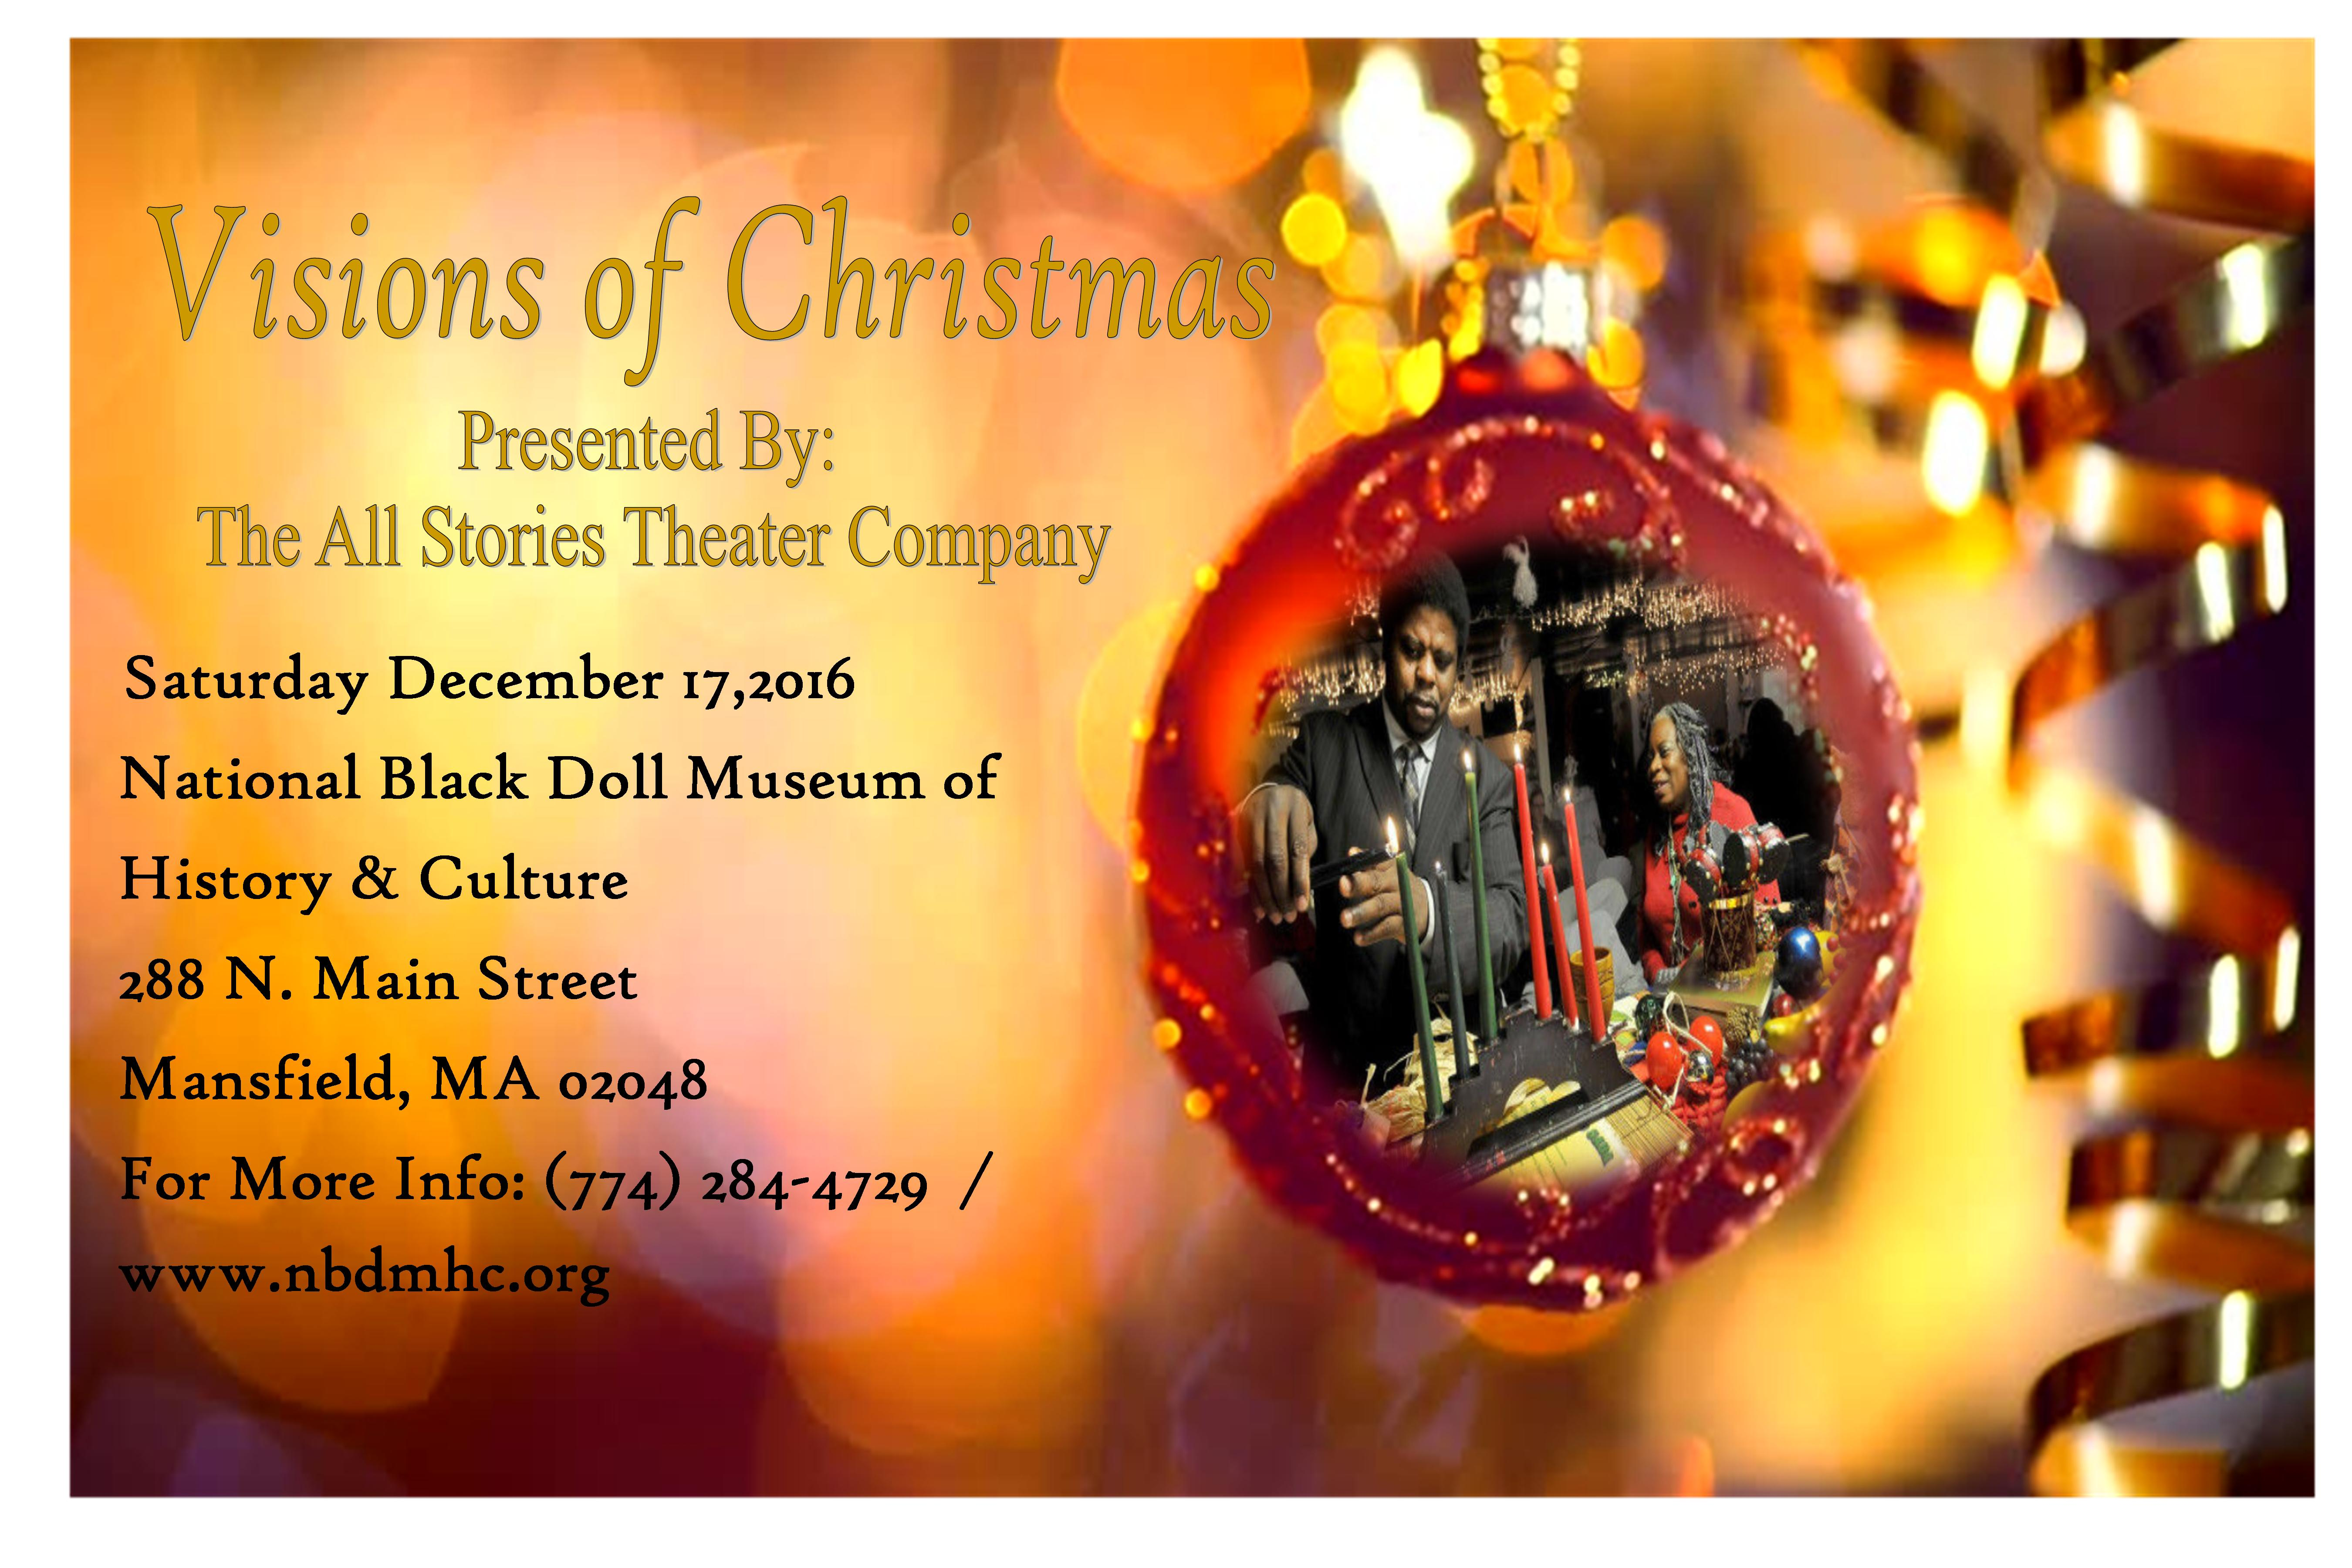 Community kwanzaa national black doll museum of history culture the all stories theater company will perform visions of christmas kristyandbryce Gallery